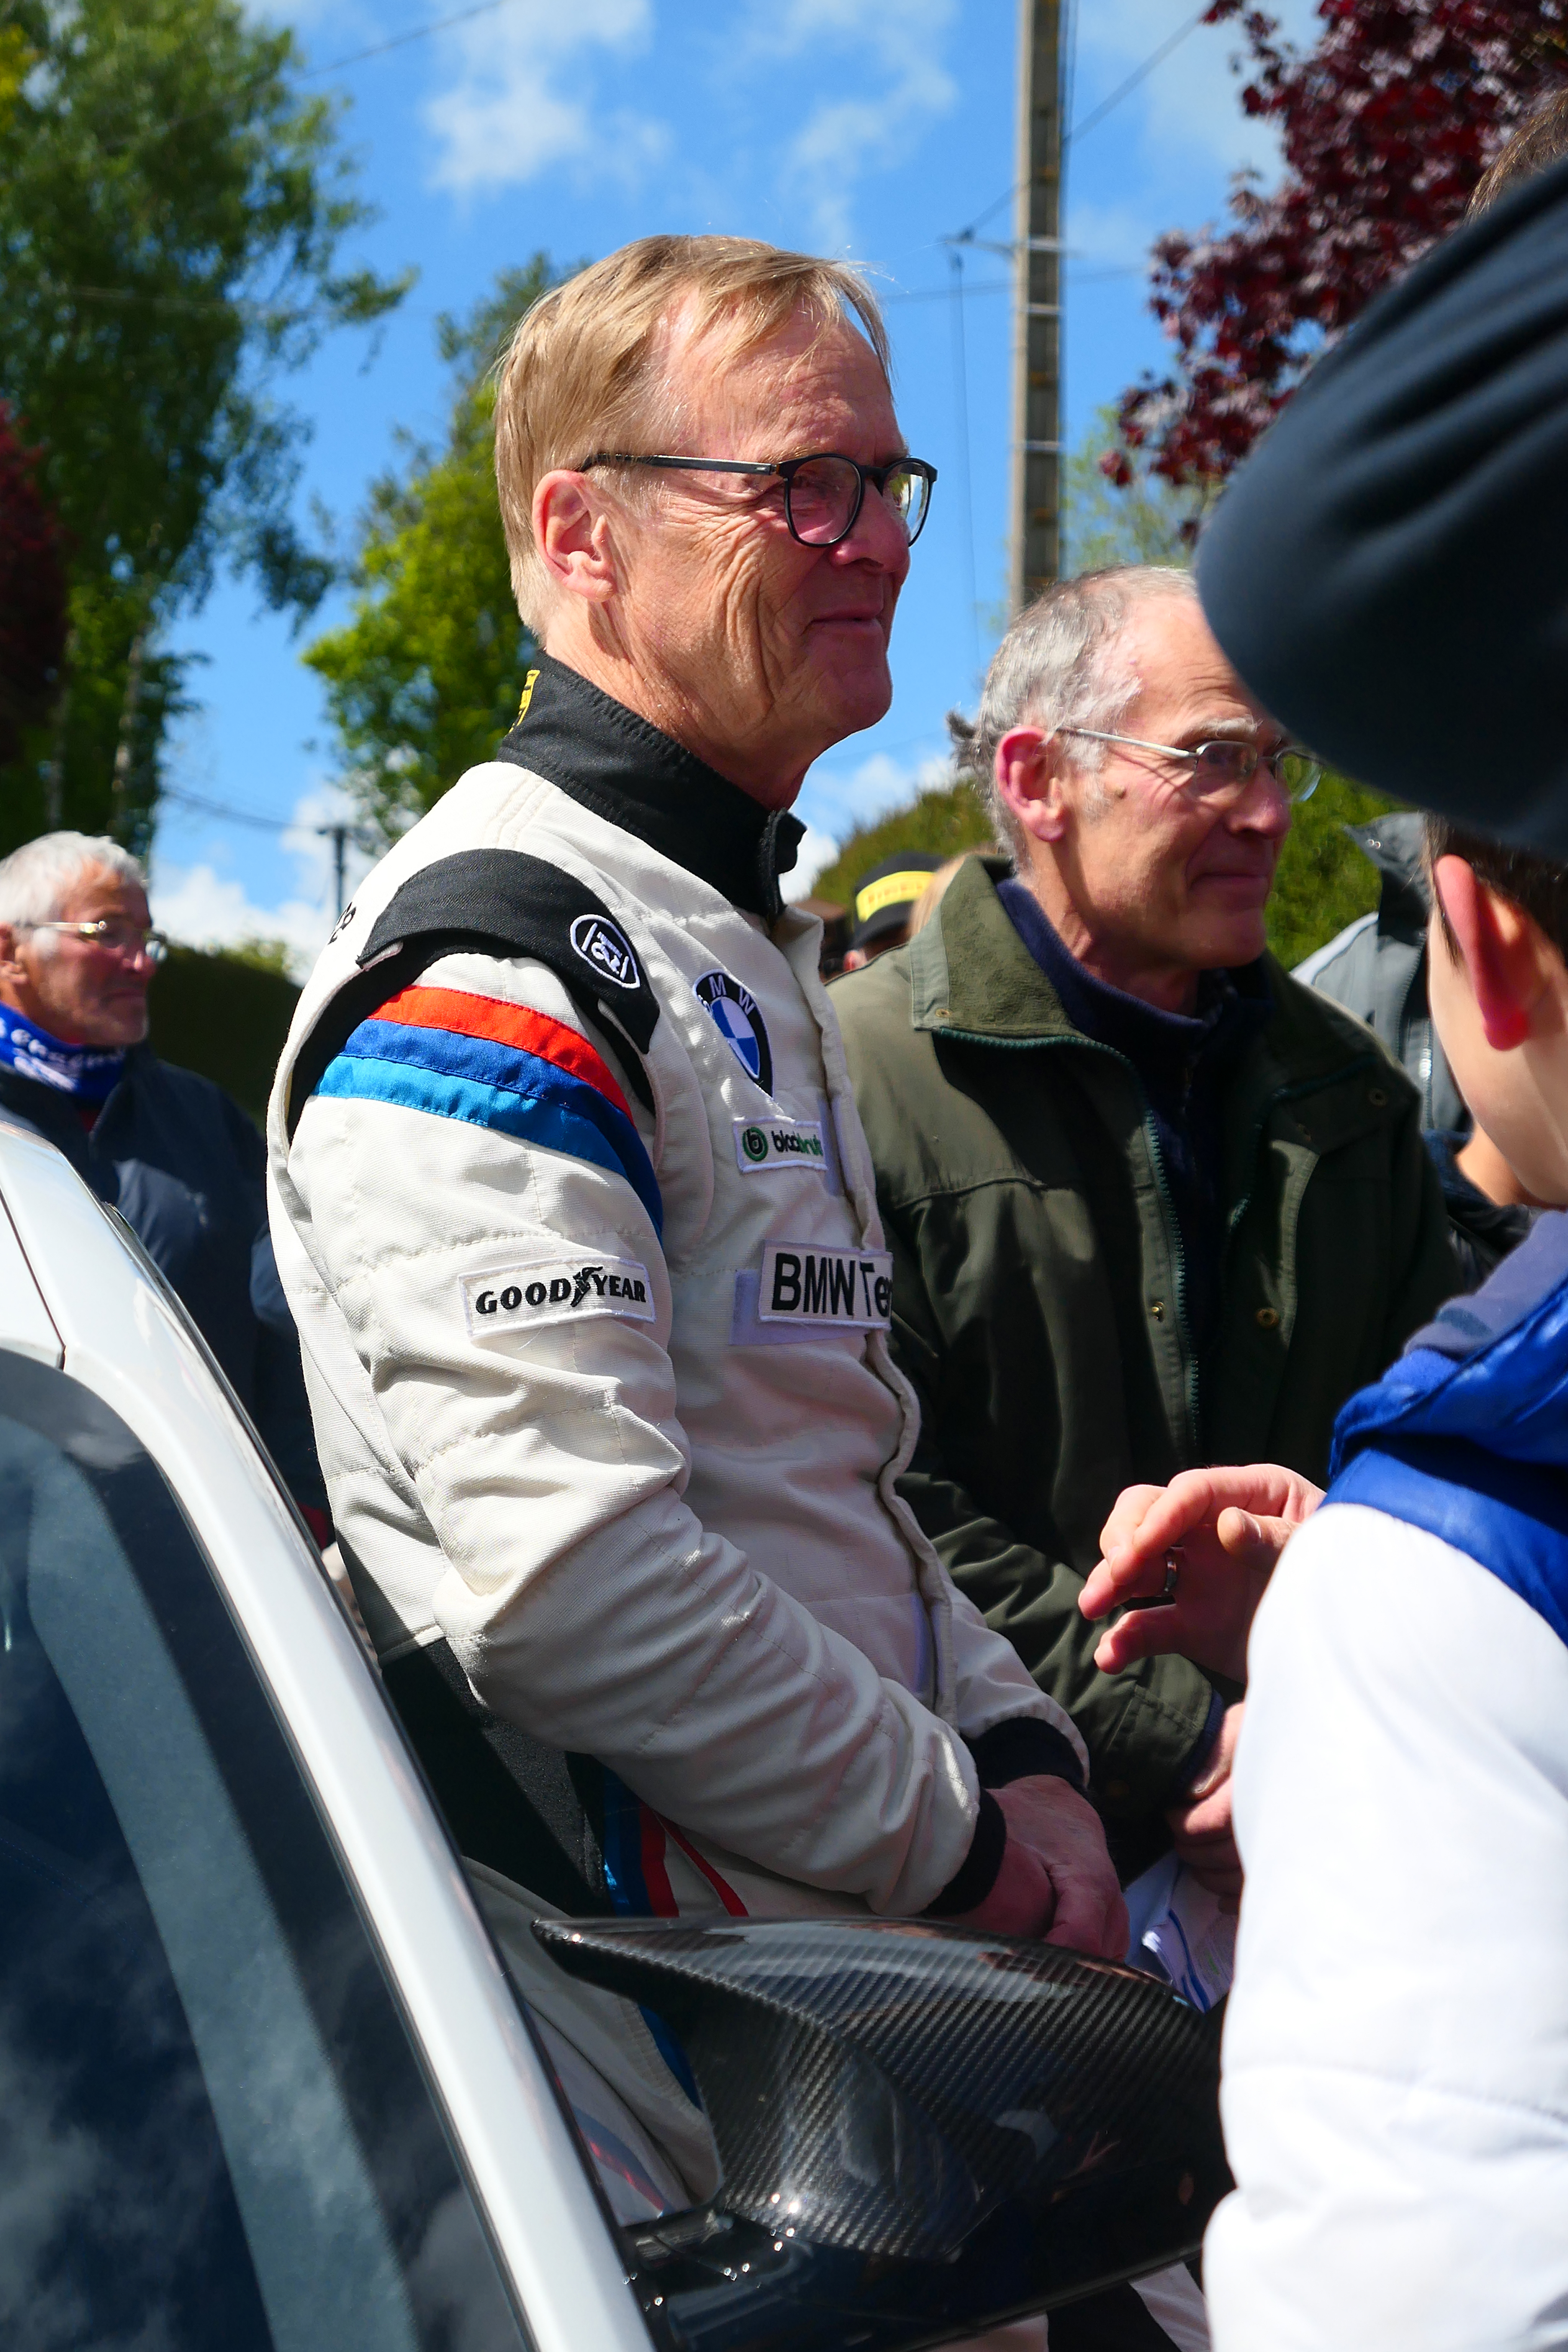 ari vatanen rally fan bmw france tour auto road road rug cars roadrugcars brothers car voiture auto automobile